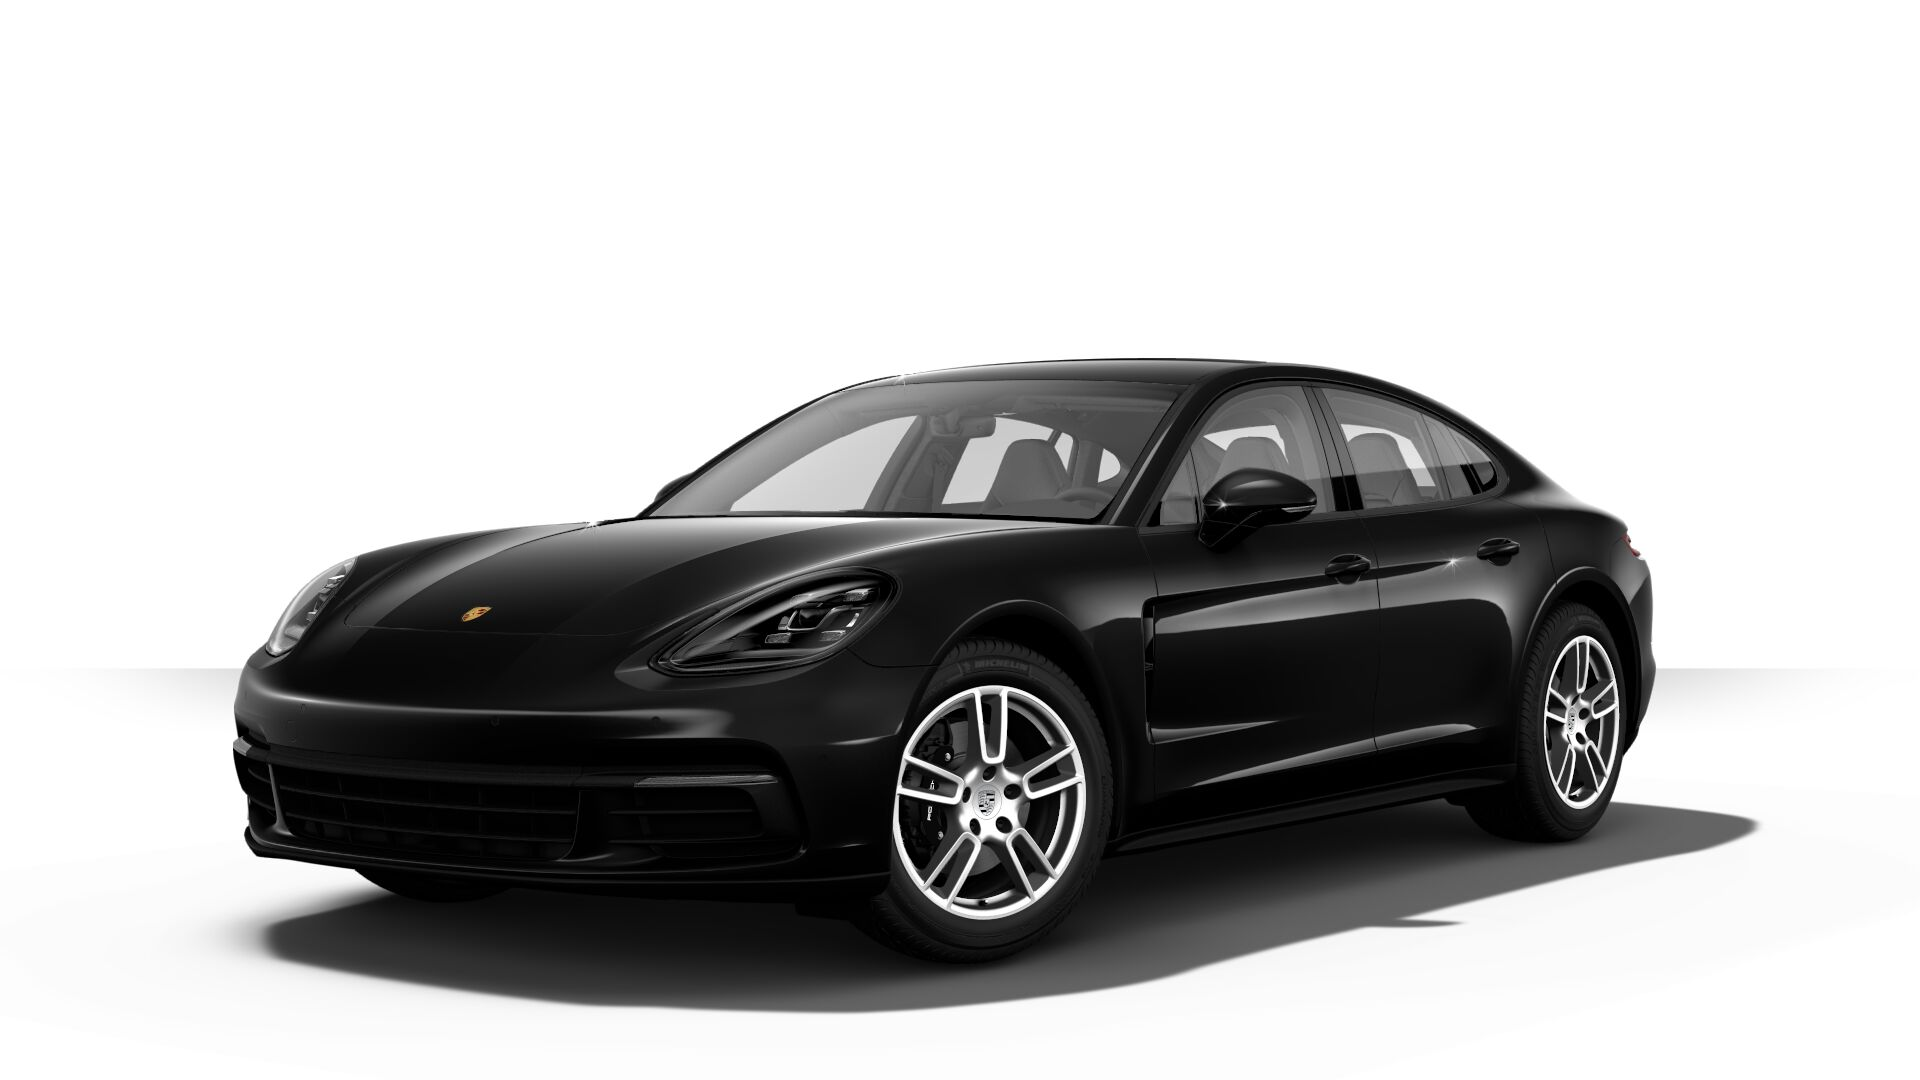 2019 Porsche Panamera Exterior Color Options Gallery